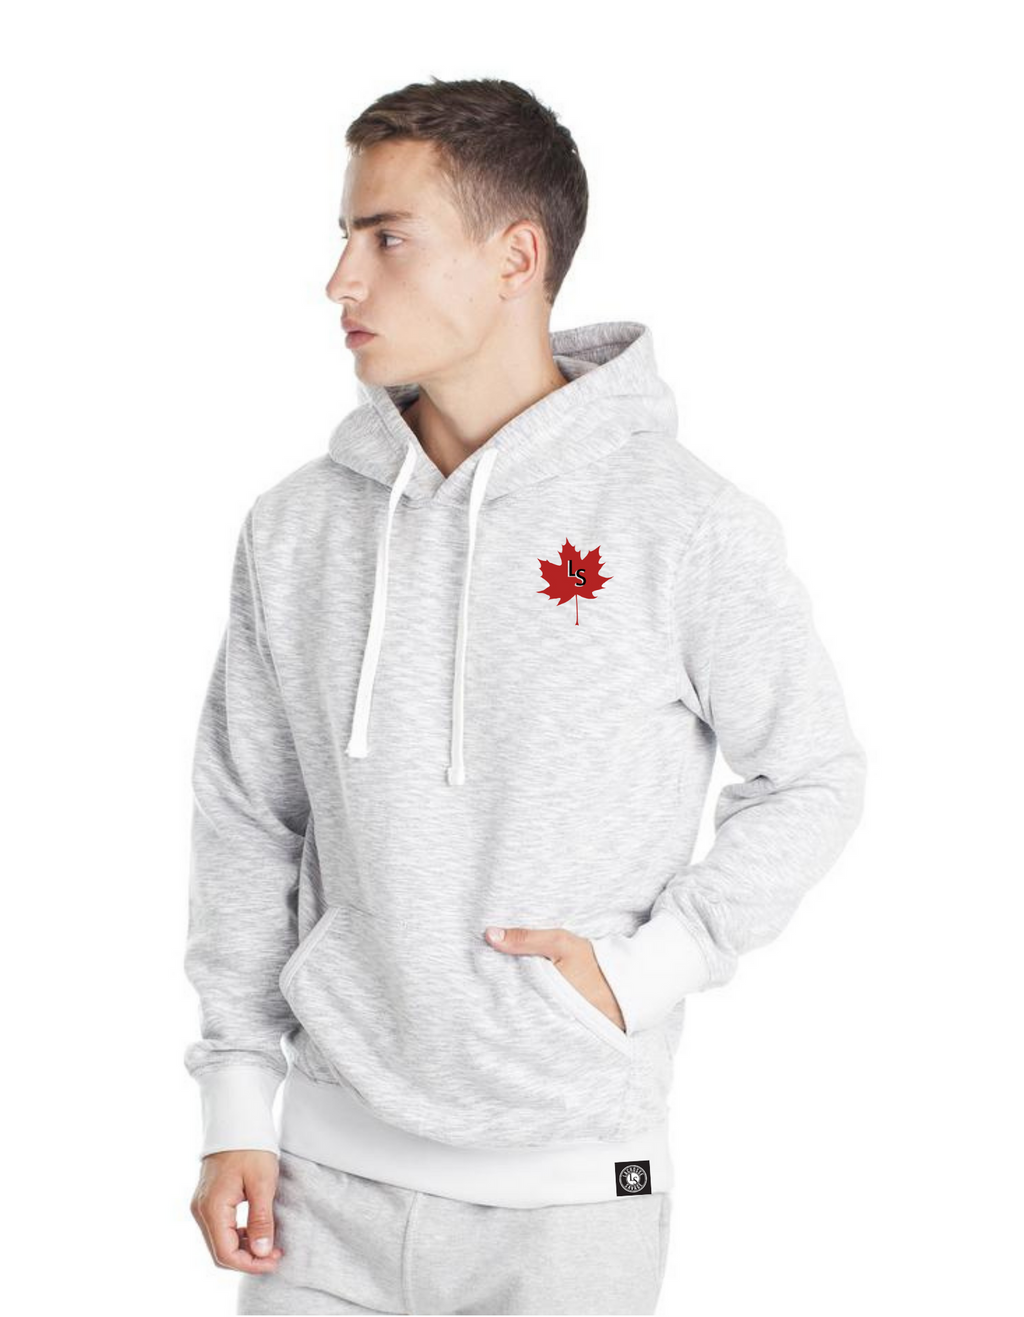 LS Maple Leaf French Terry Hooded Sweater | MRT900 - Lacrosse Savage